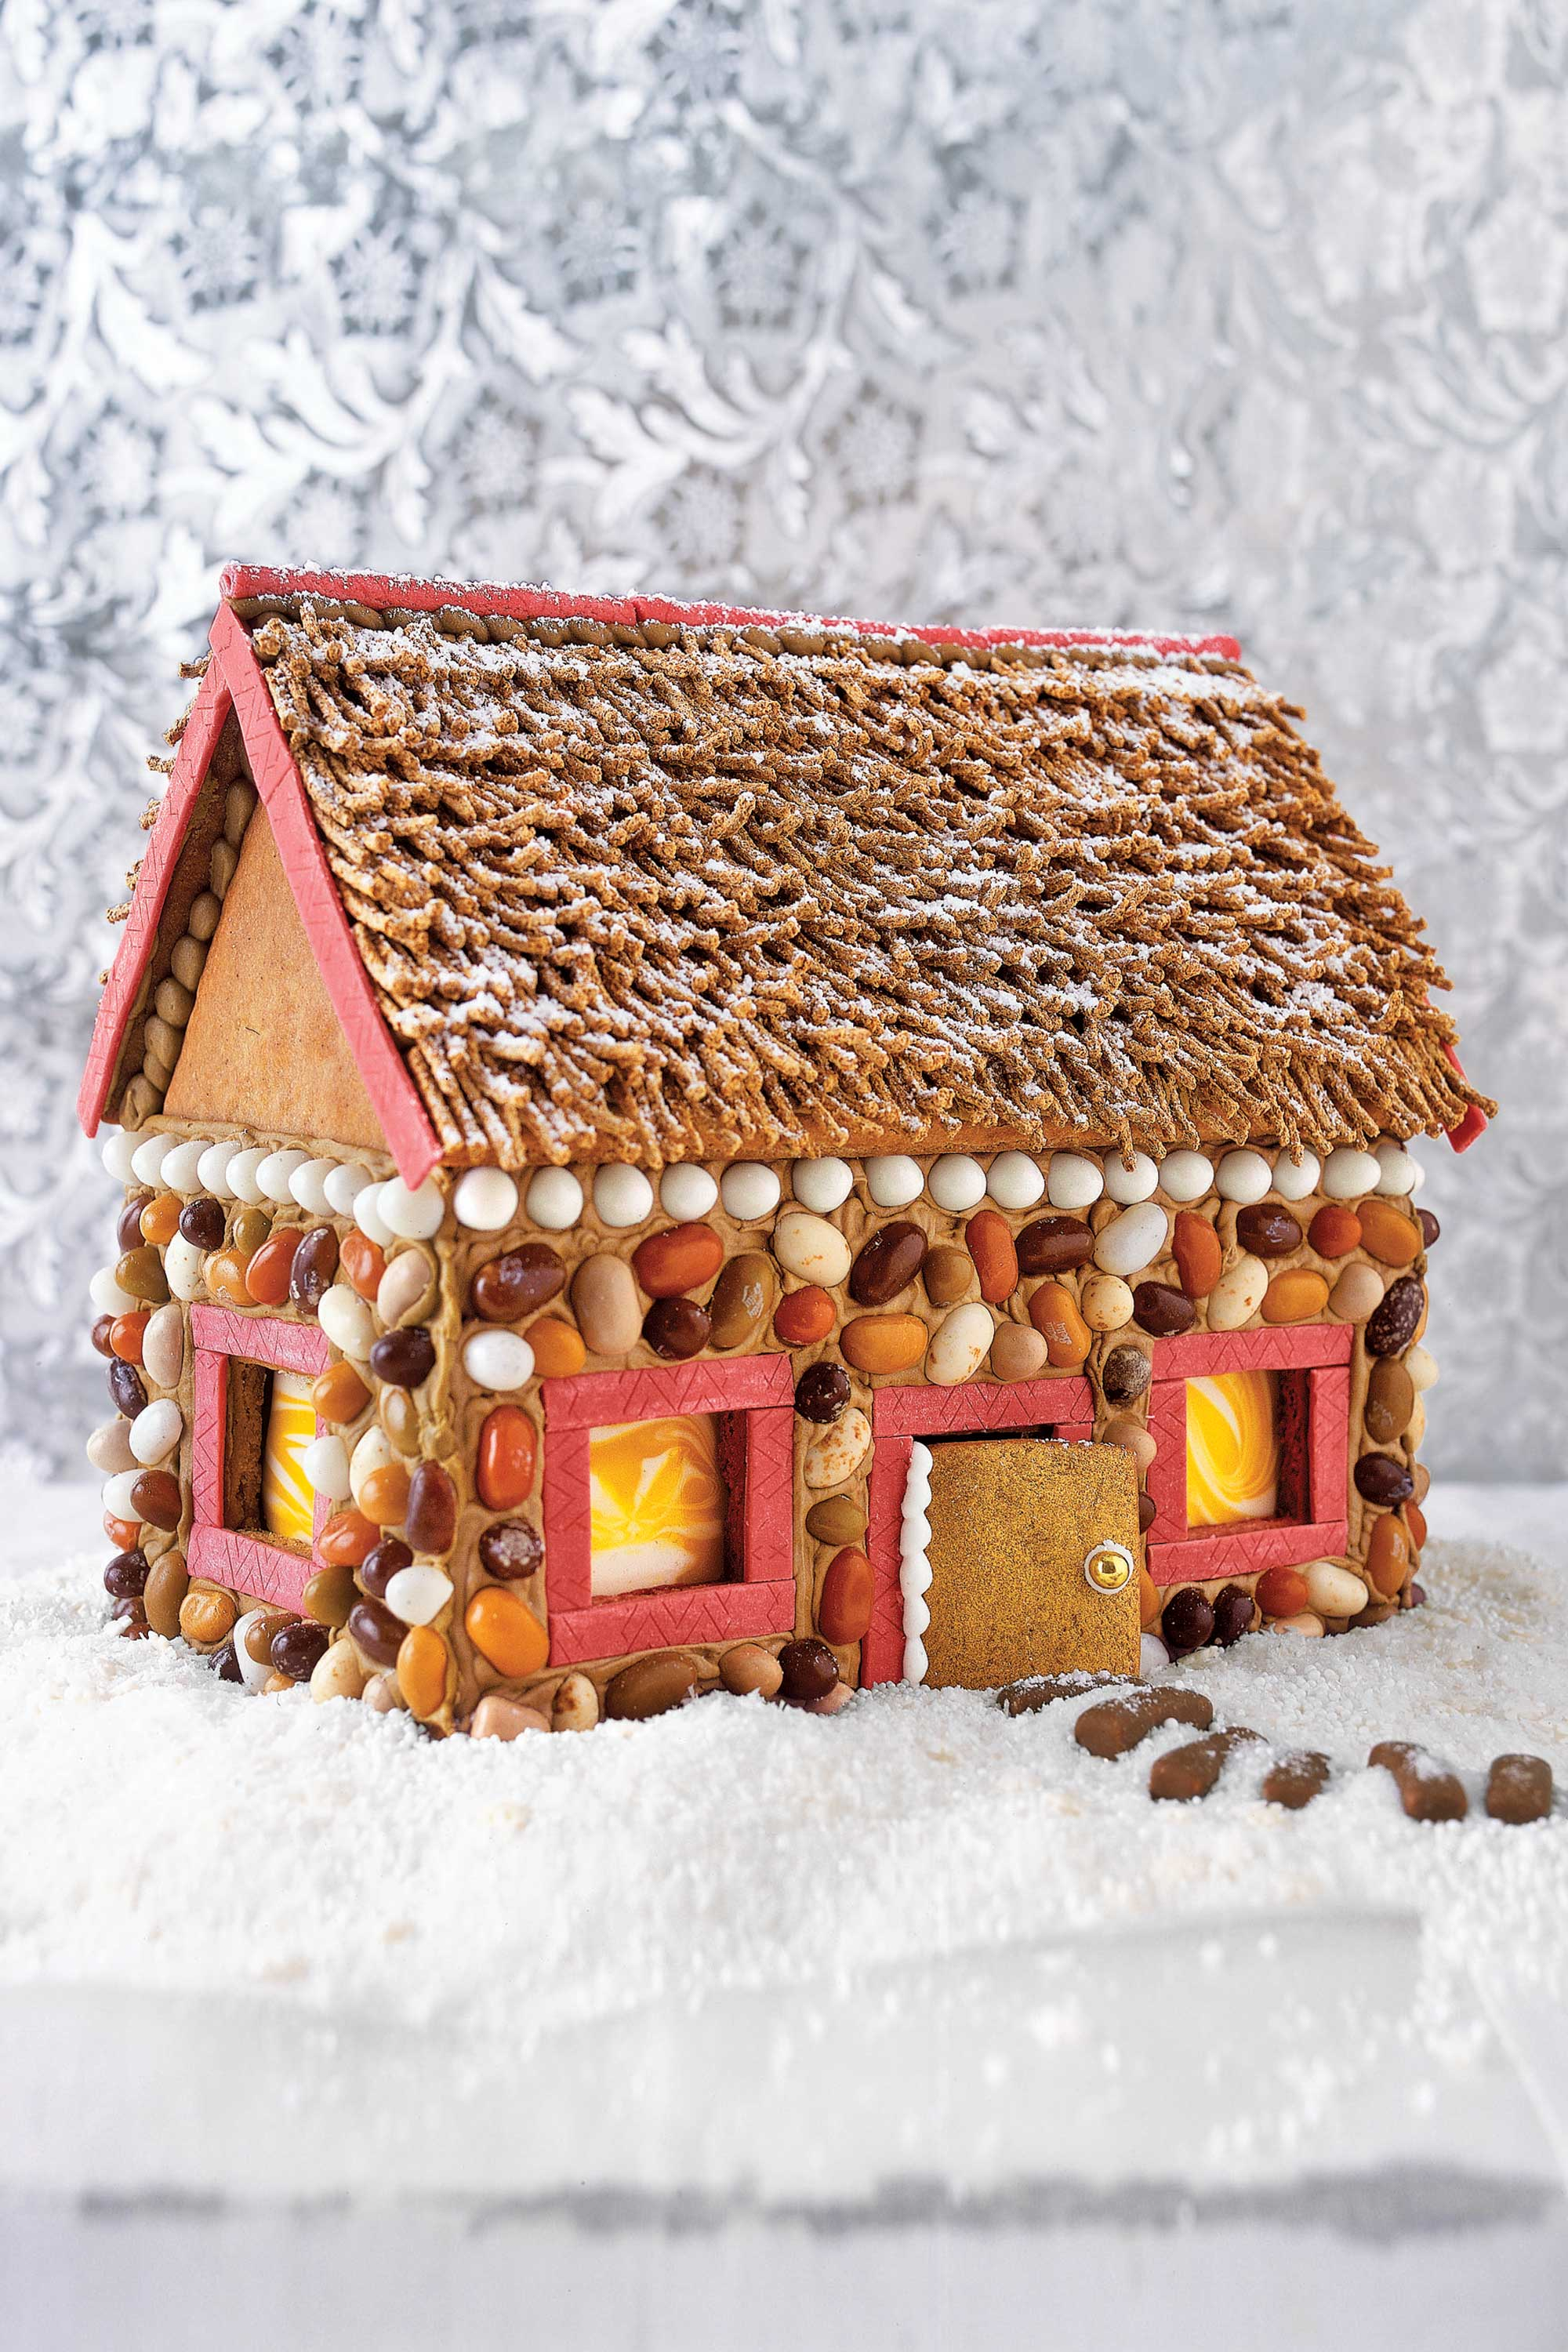 25 Cute Gingerbread House Ideas Pictures How to Make a